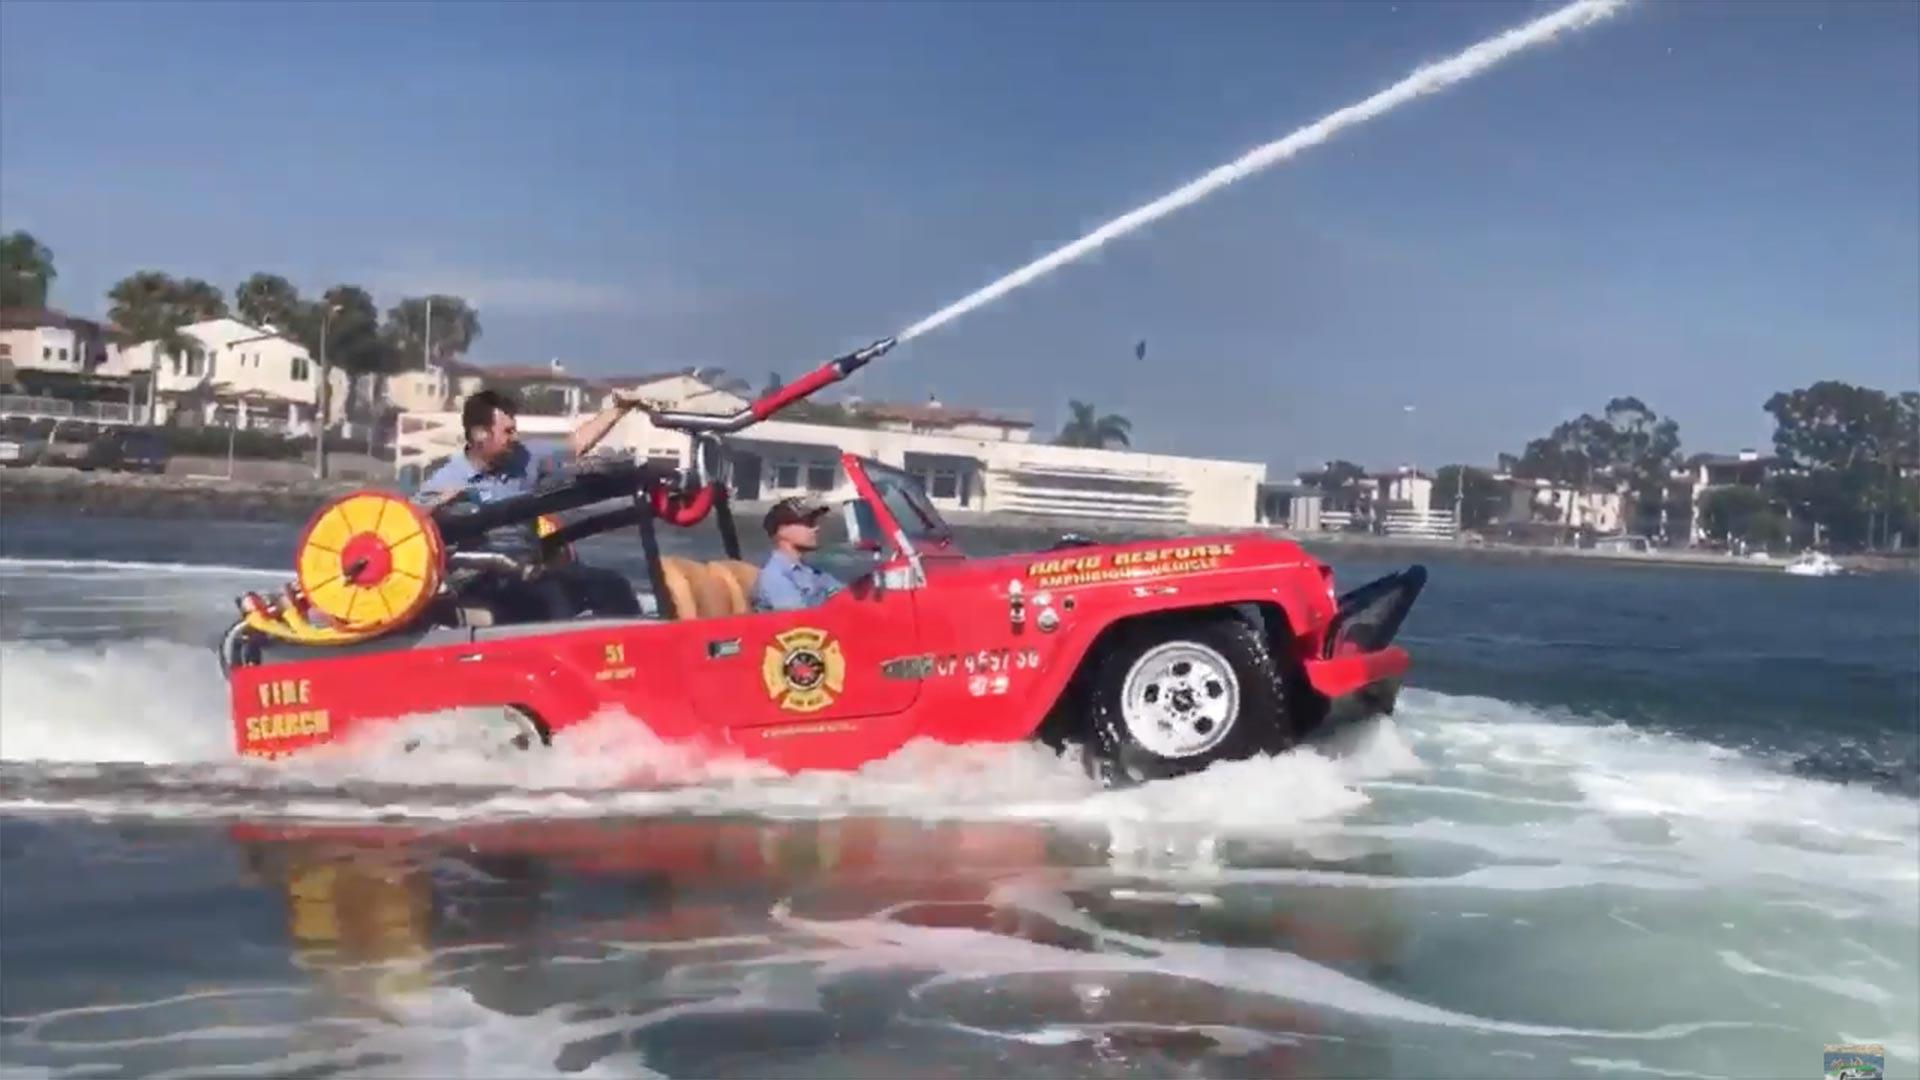 Cannon-Equipped Amphibious WaterCar Is Cool Way To Put Out ...